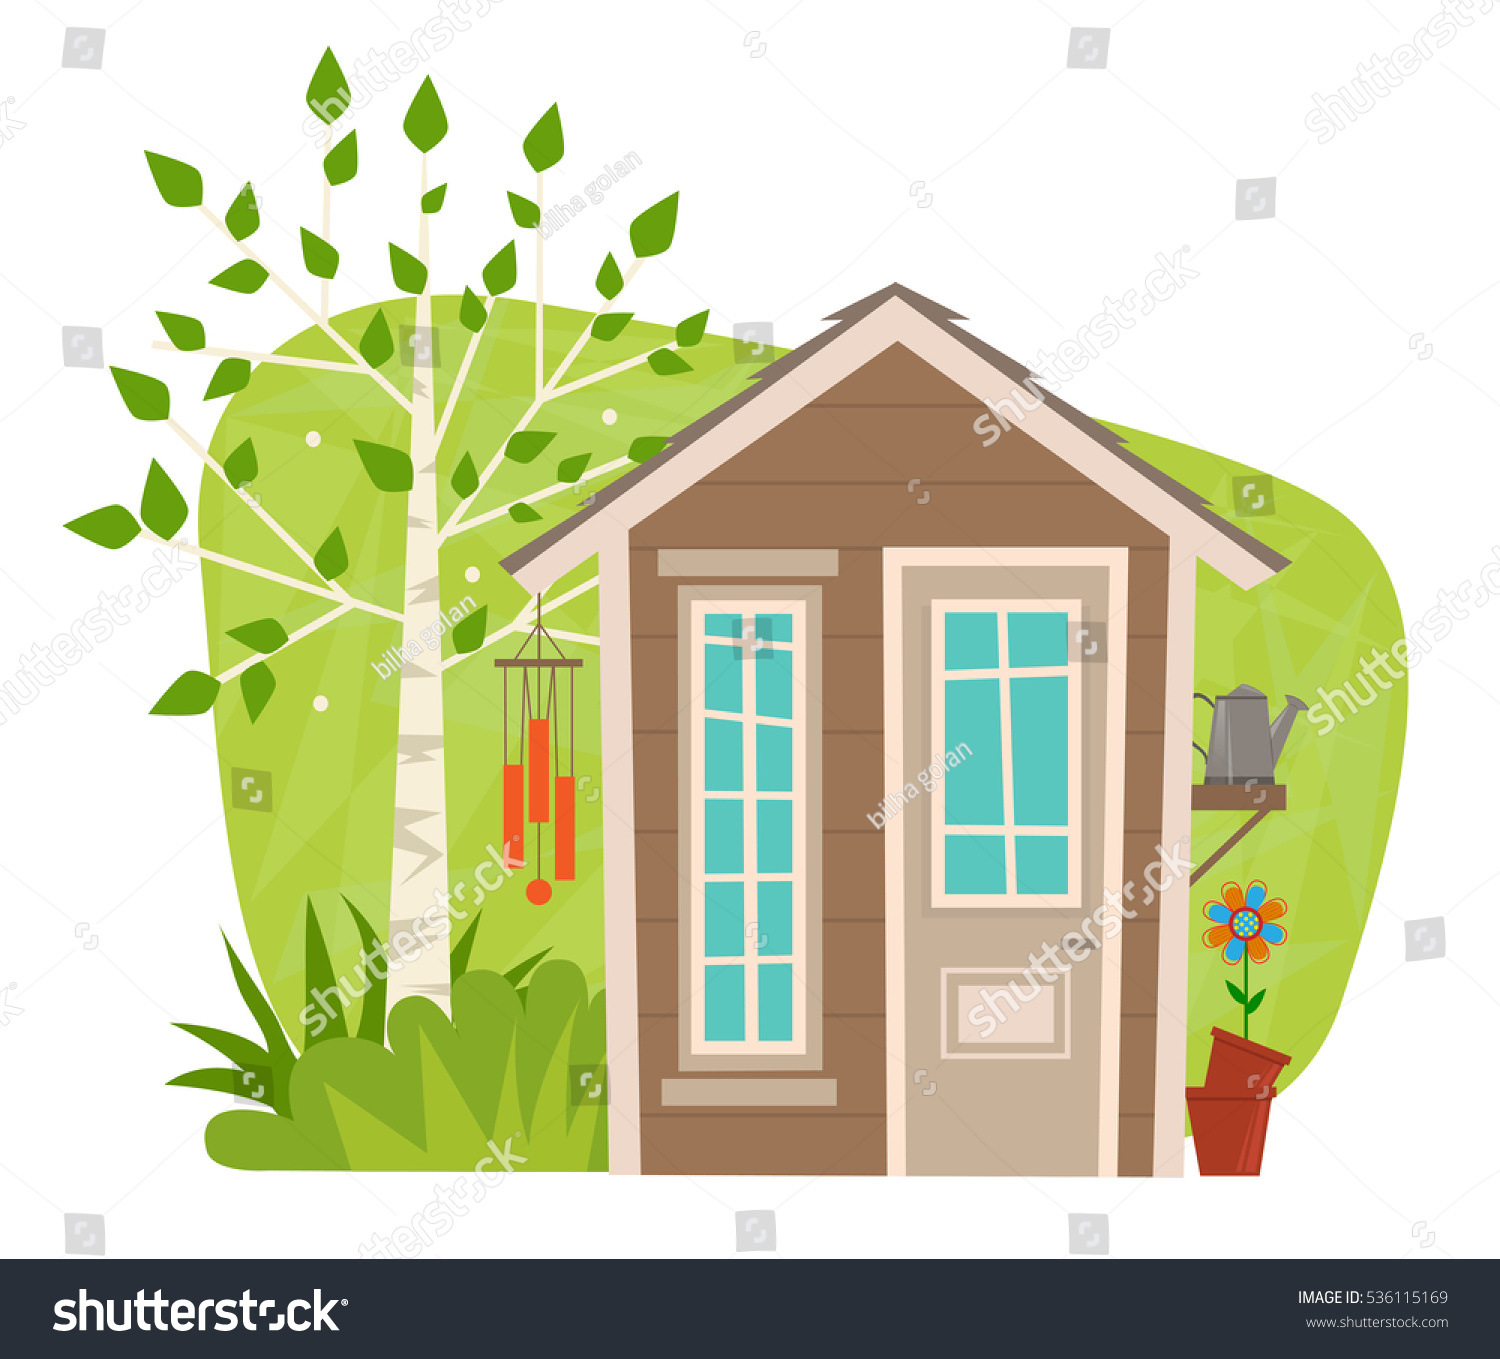 Cute Garden Shed   Clip Art Of A Small Garden Shed With Tree, Wind